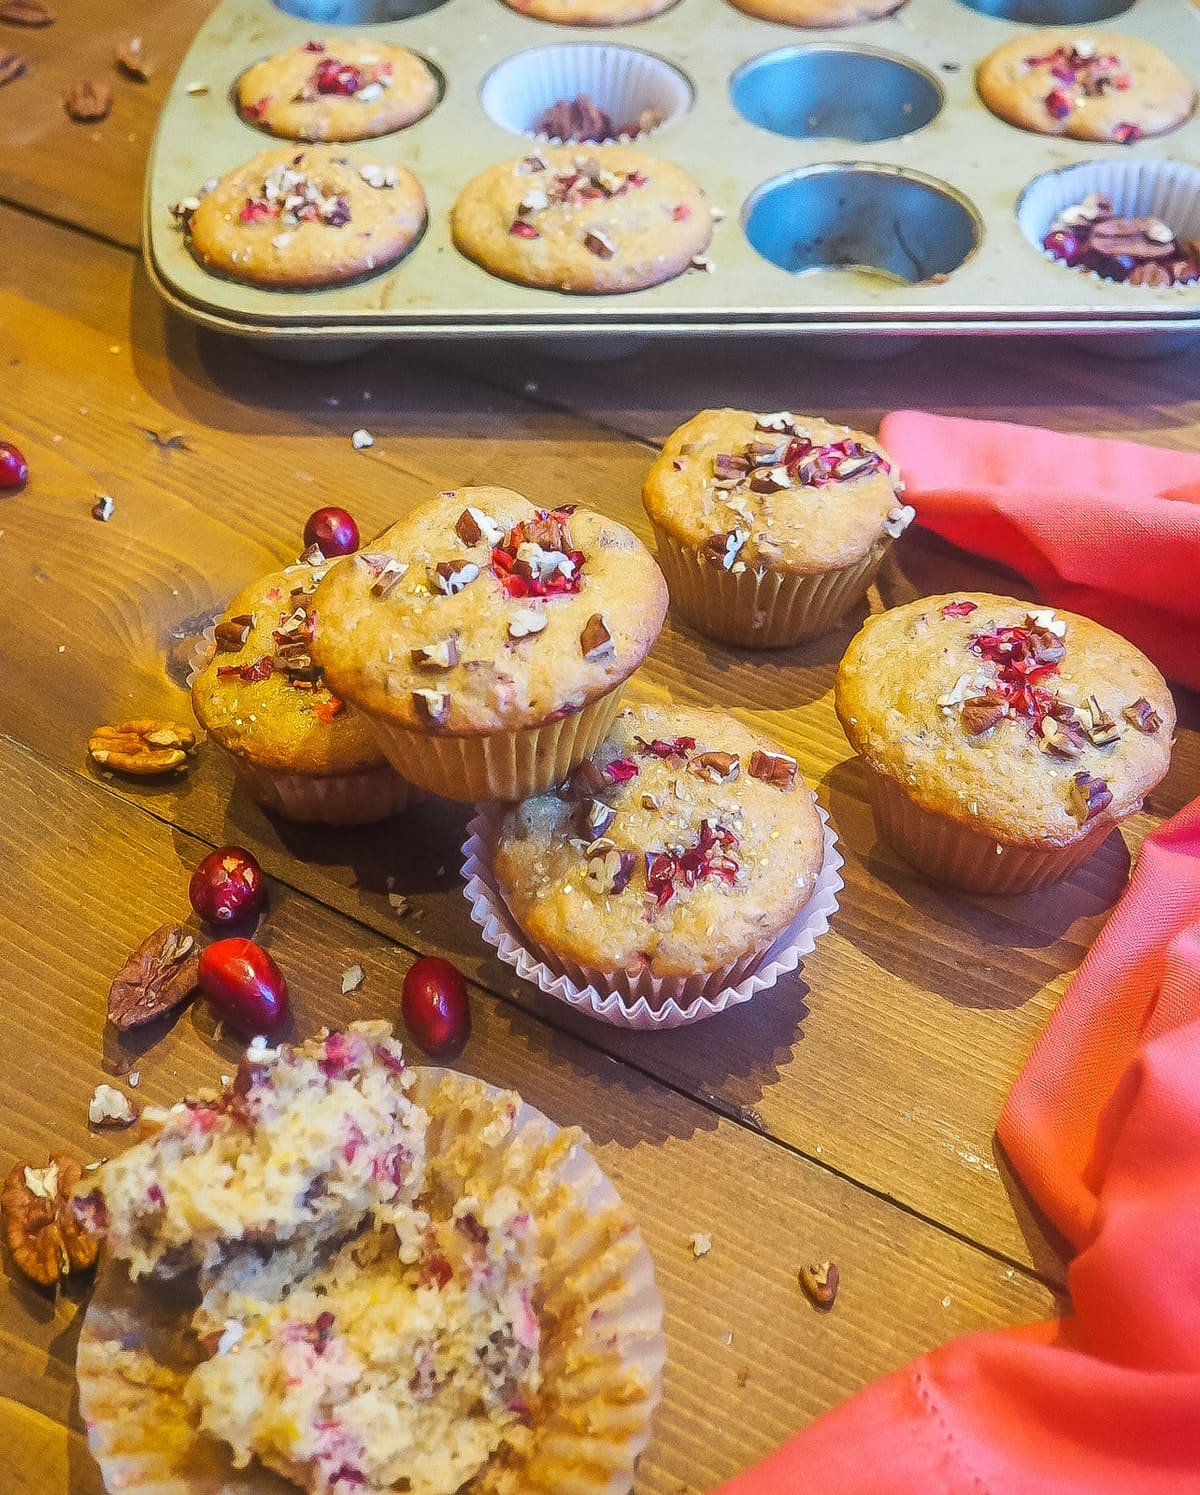 Freshly baked cranberry orange muffins sprinkled with pecans stacked in front of a muffin tin.